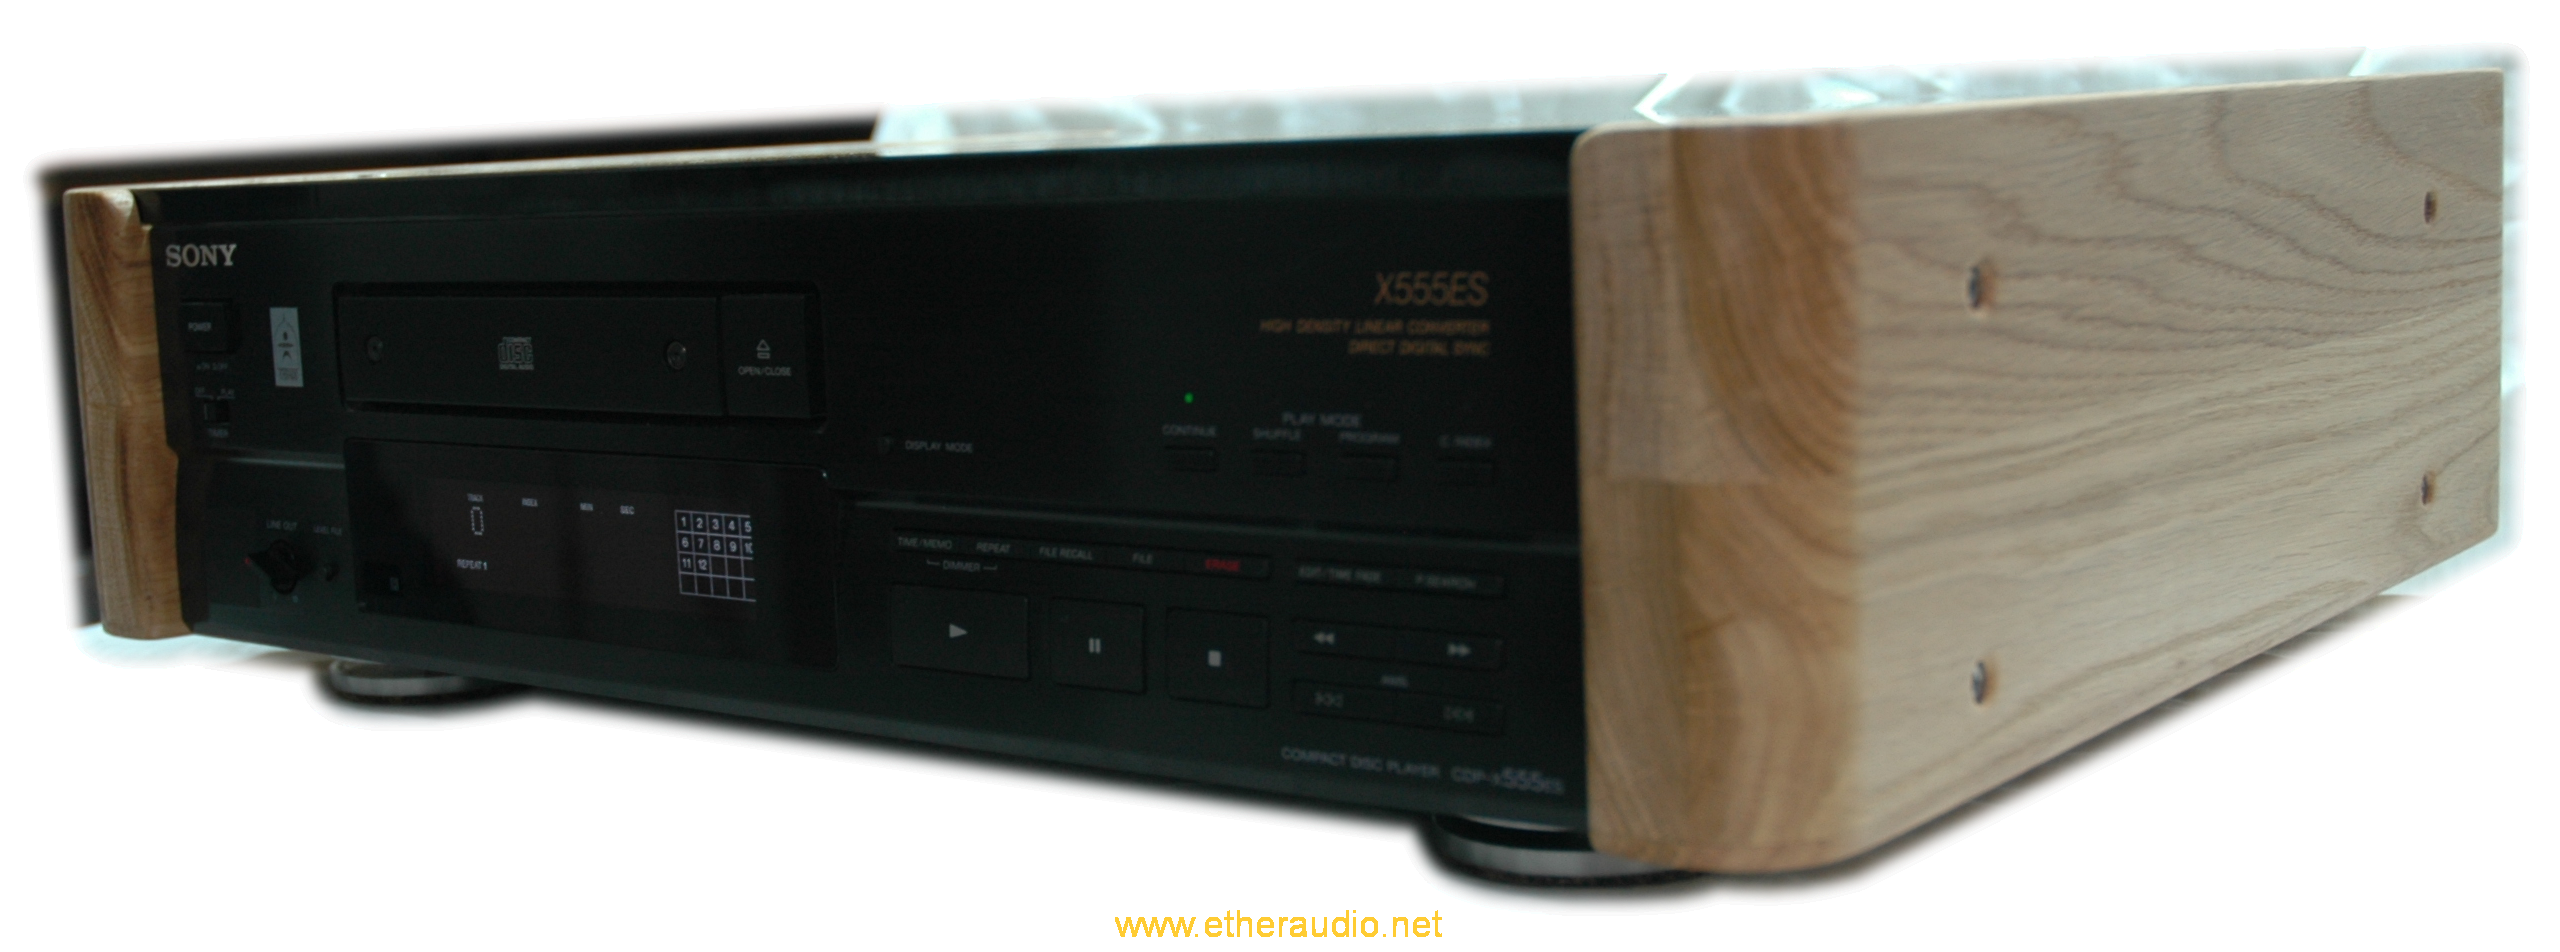 Transformed by Etheraudio Sony CDP-X555ES, that makes all the other CD-players meaningless